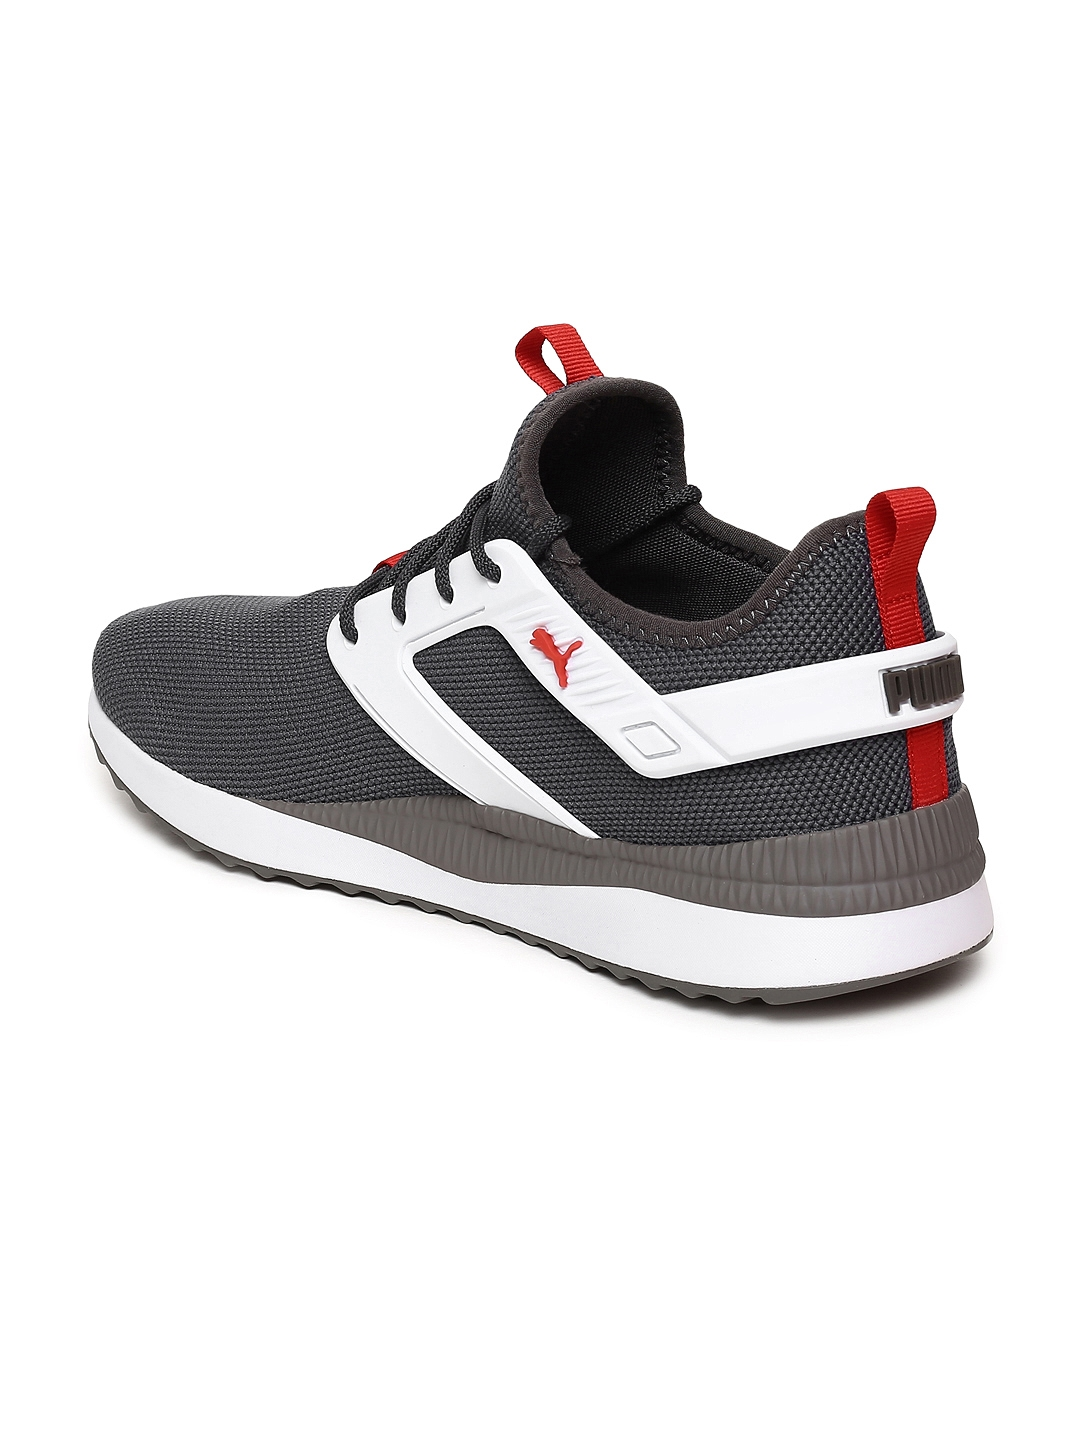 Buy Puma Men Charcoal Grey Pacer Next Excel Sneakers - Casual Shoes ... 3323e9eeb